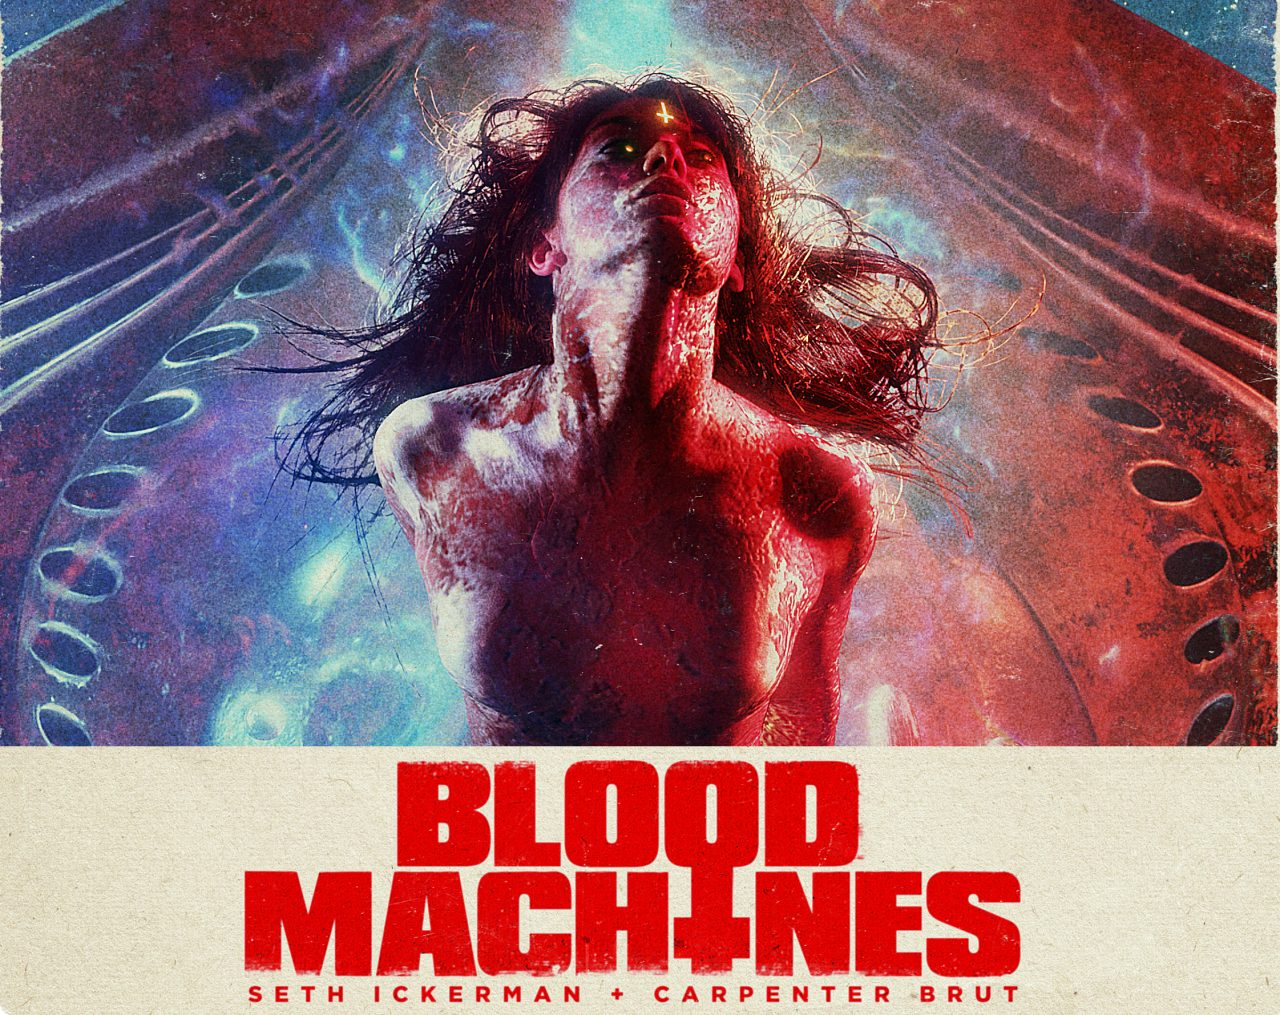 Blood Machines: The Last Campaign - Support Carpenter Brut's Kickstarter!